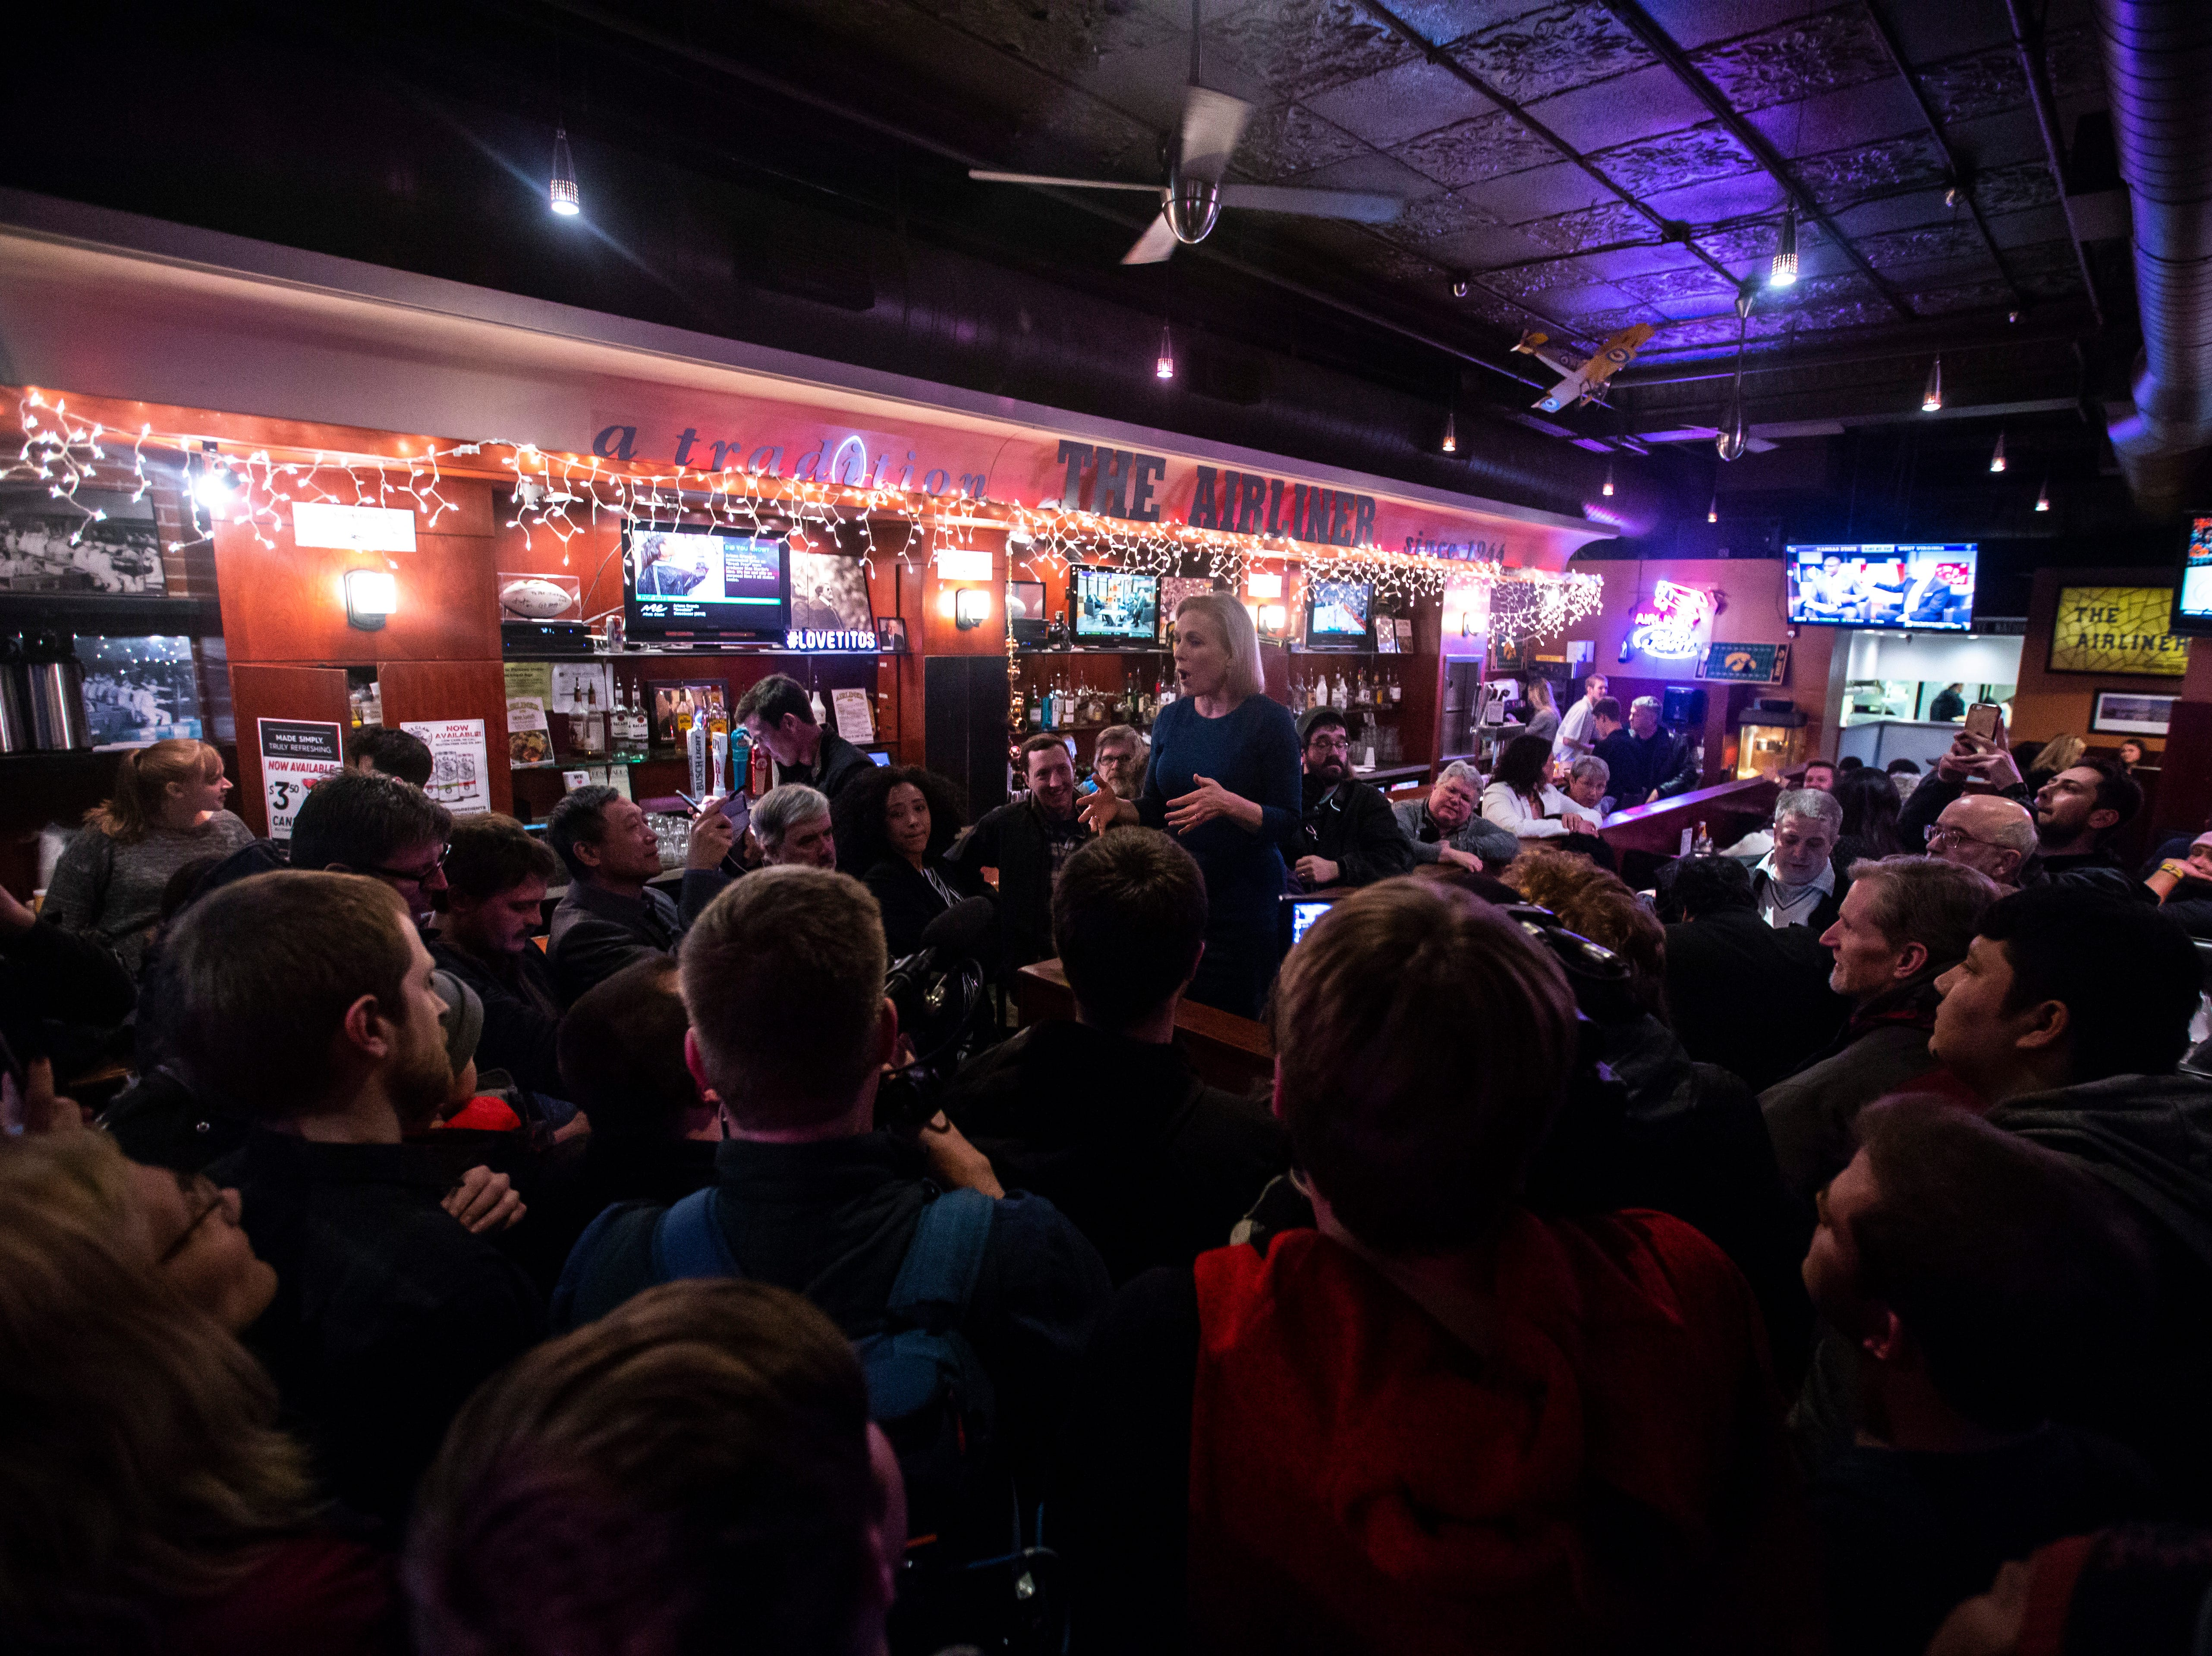 U.S. Sen. Kirsten Gillibrand, D-NY, speaks to the overflow crowd during a campaign event on Monday, Feb. 18, 2019 at The Airliner in Iowa City, Iowa.